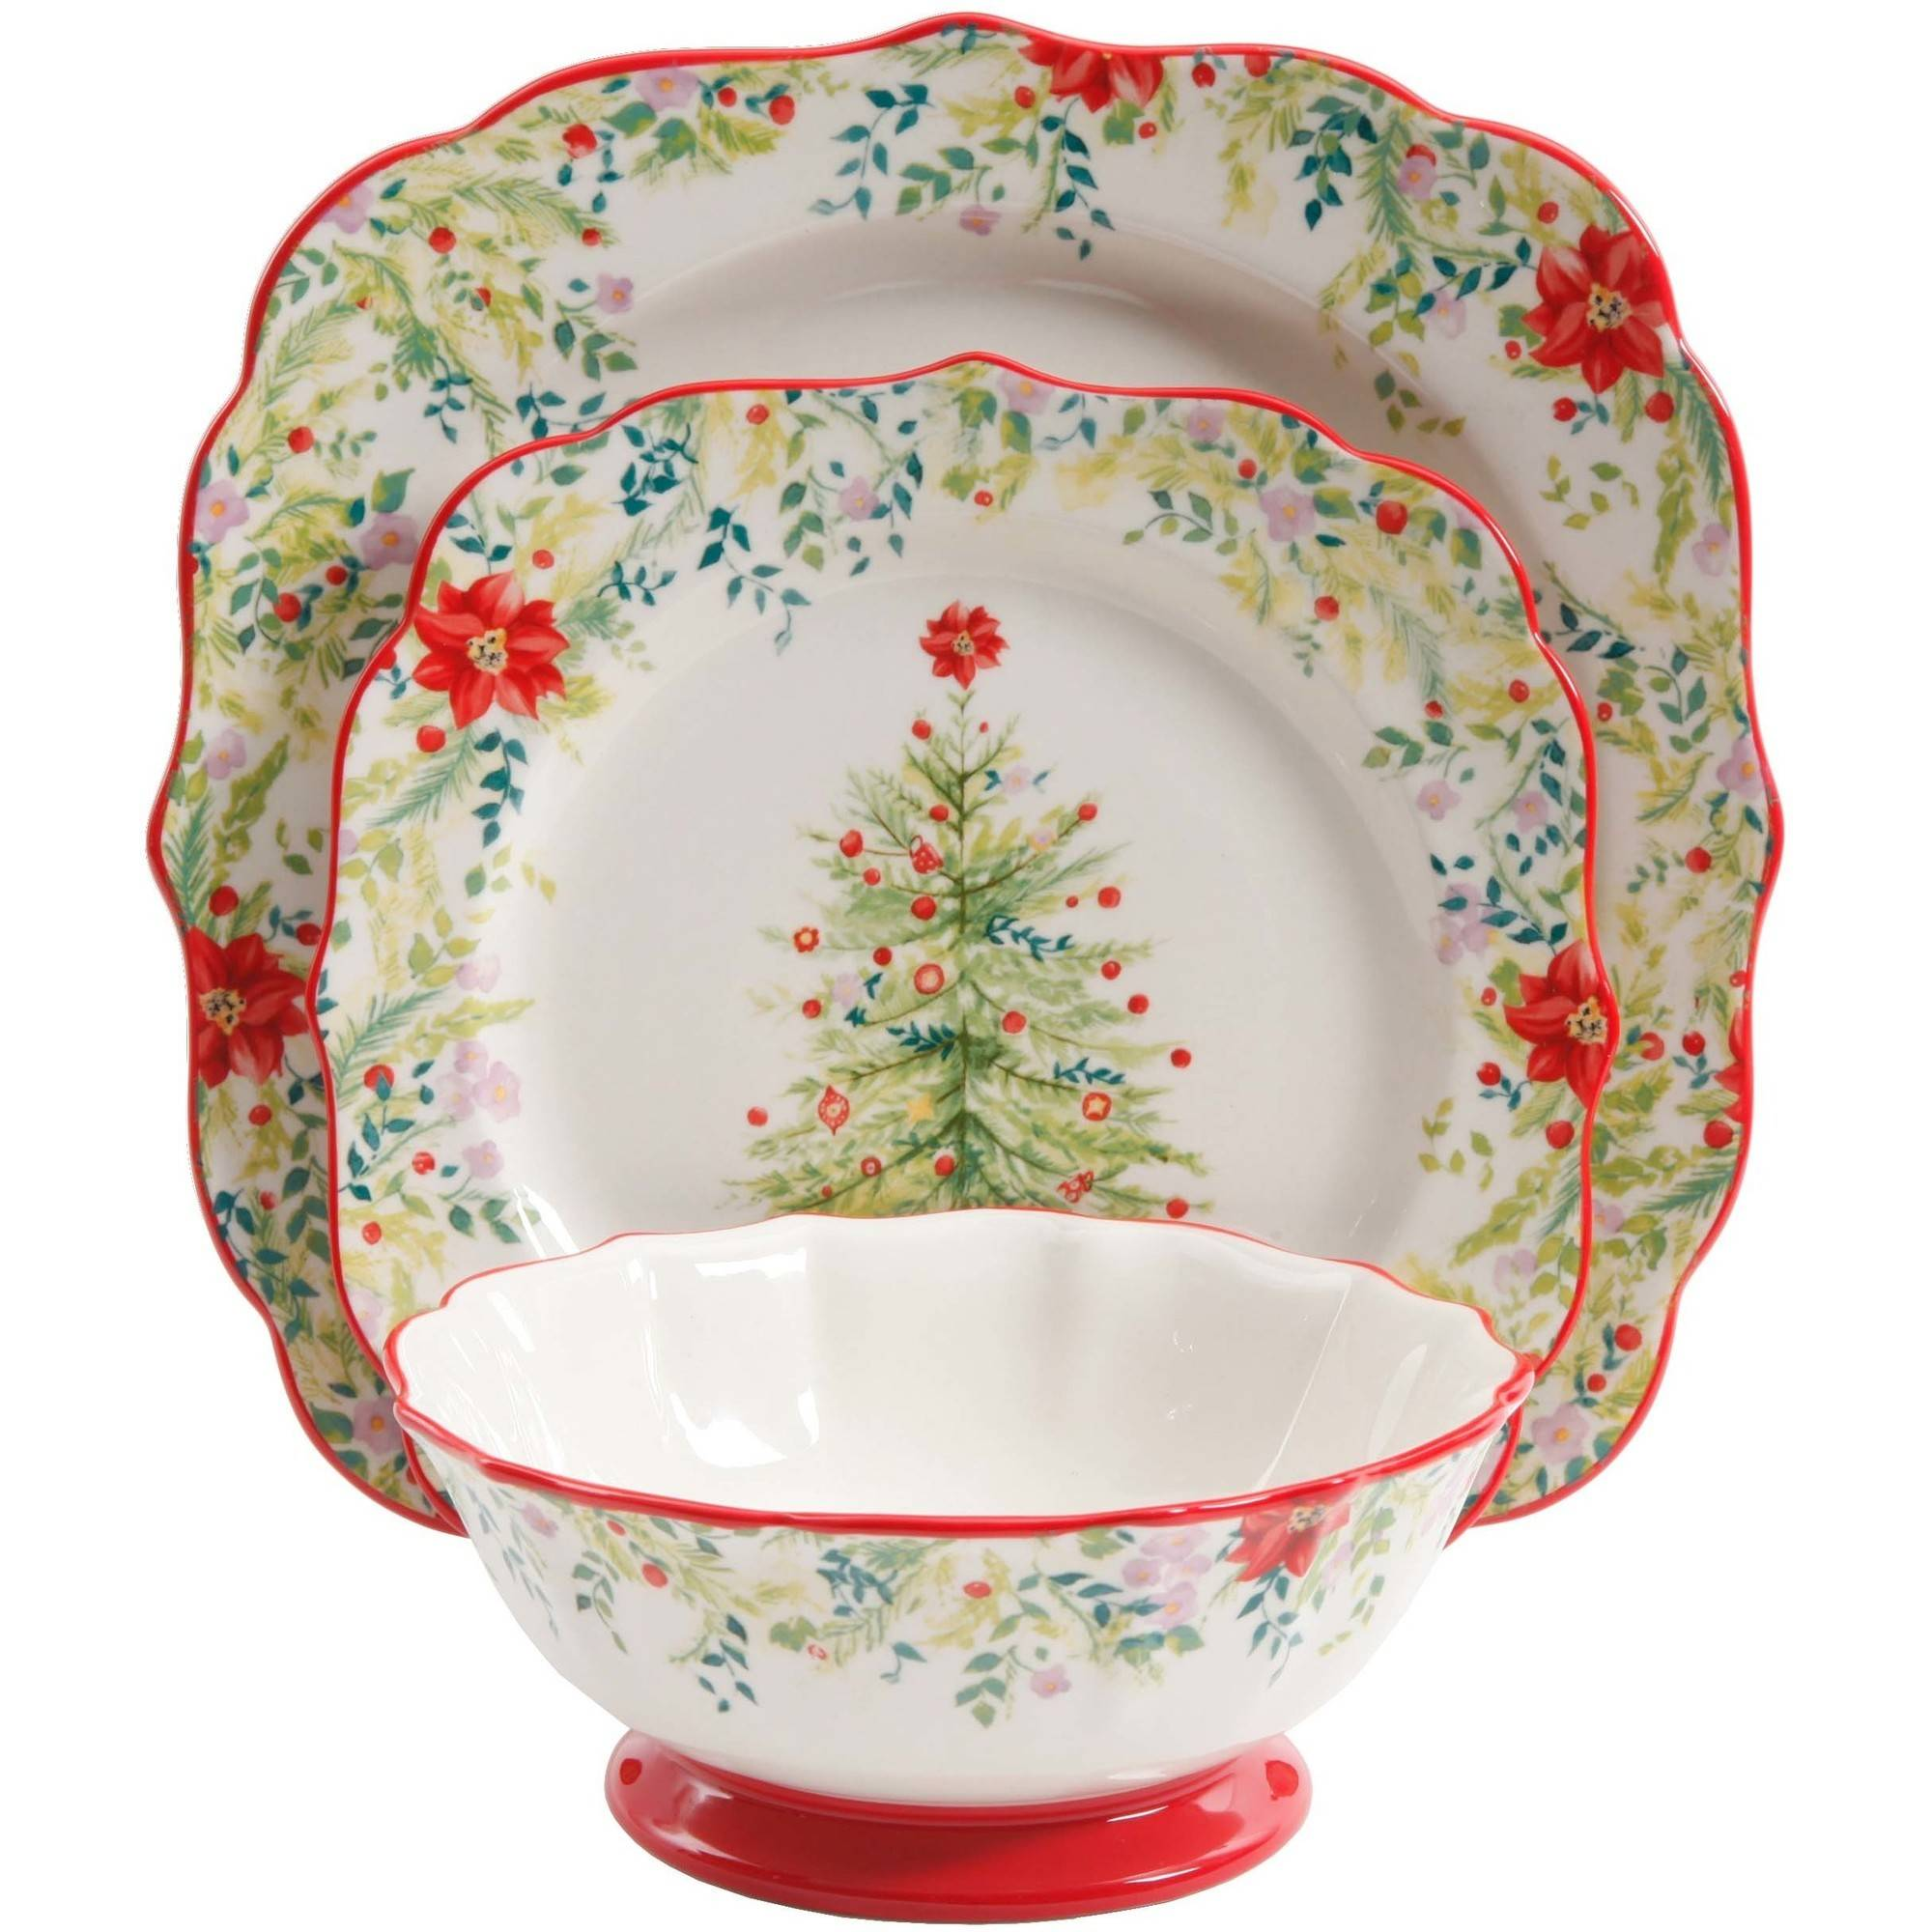 The Pioneer Woman Holiday Cheer 12-Piece Dinnerware Set - Walmart.com